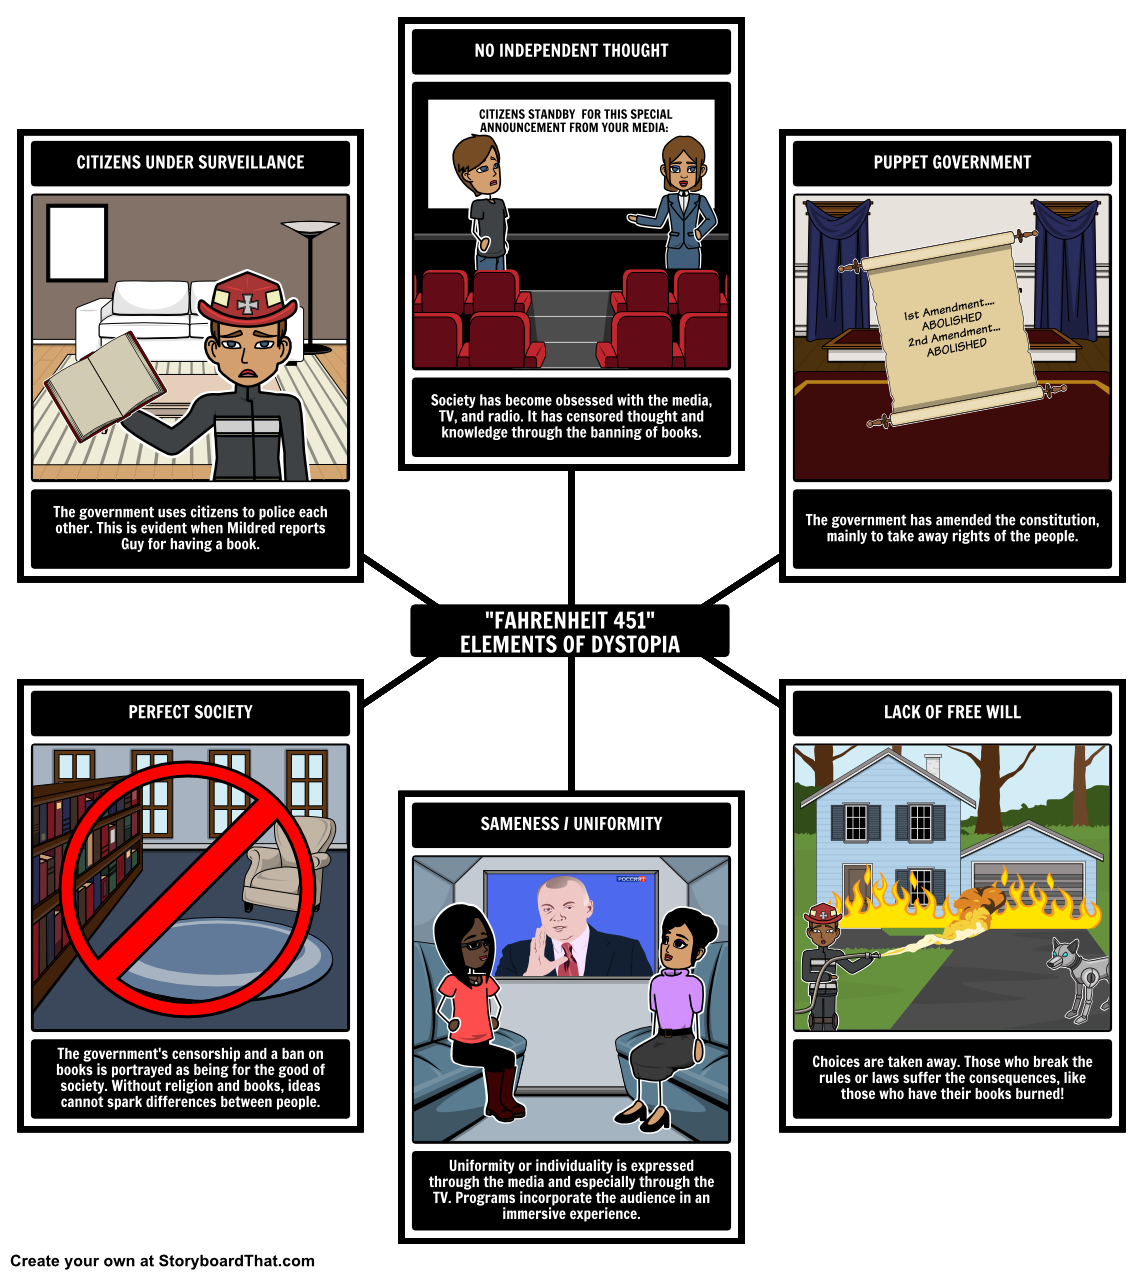 fahrenheit four corners activity paper activities and student fahrenheit 451 elements of a dystopia this activity your students will identify